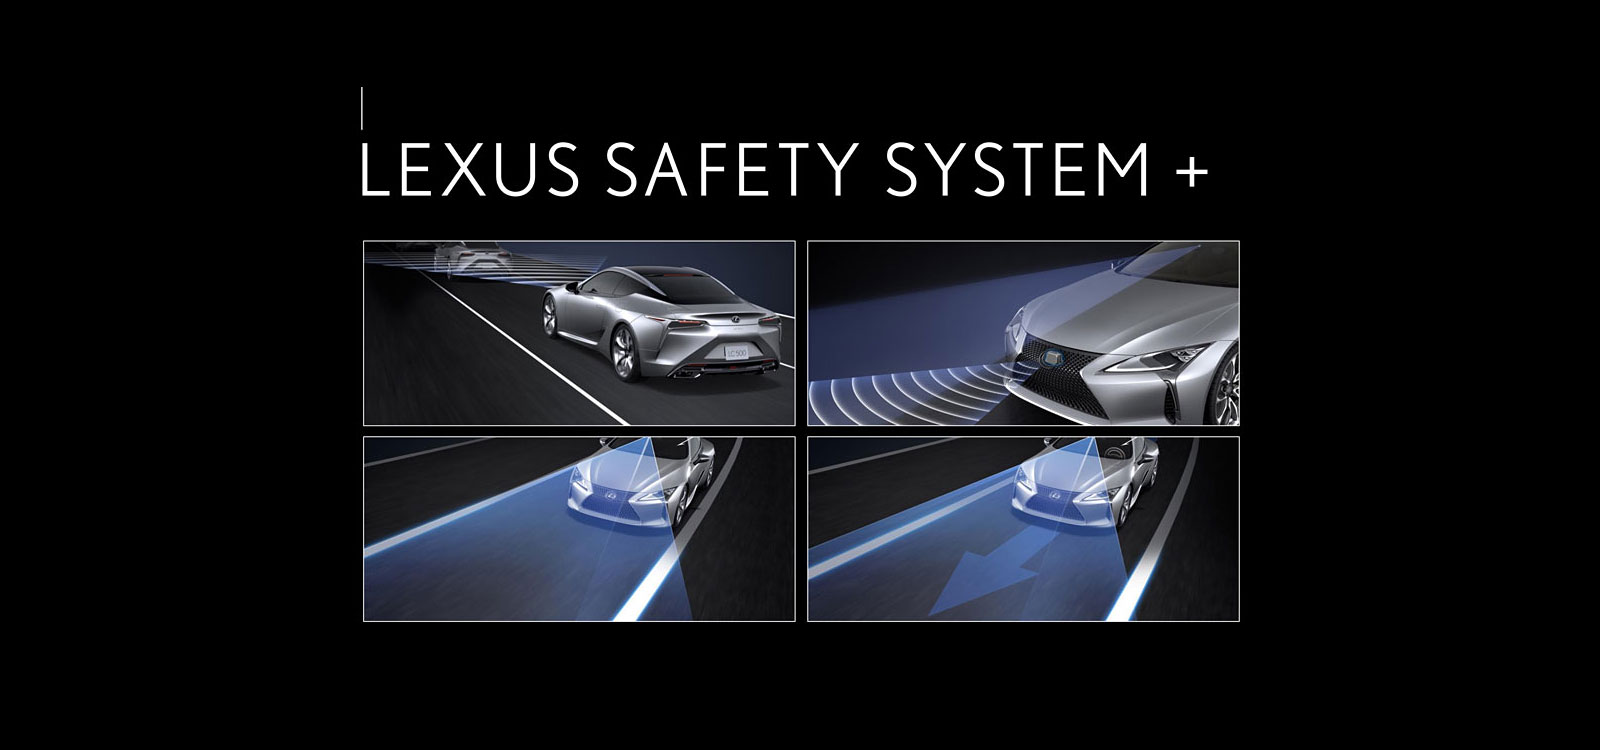 Lexus Safety System+ standard on all MY2020